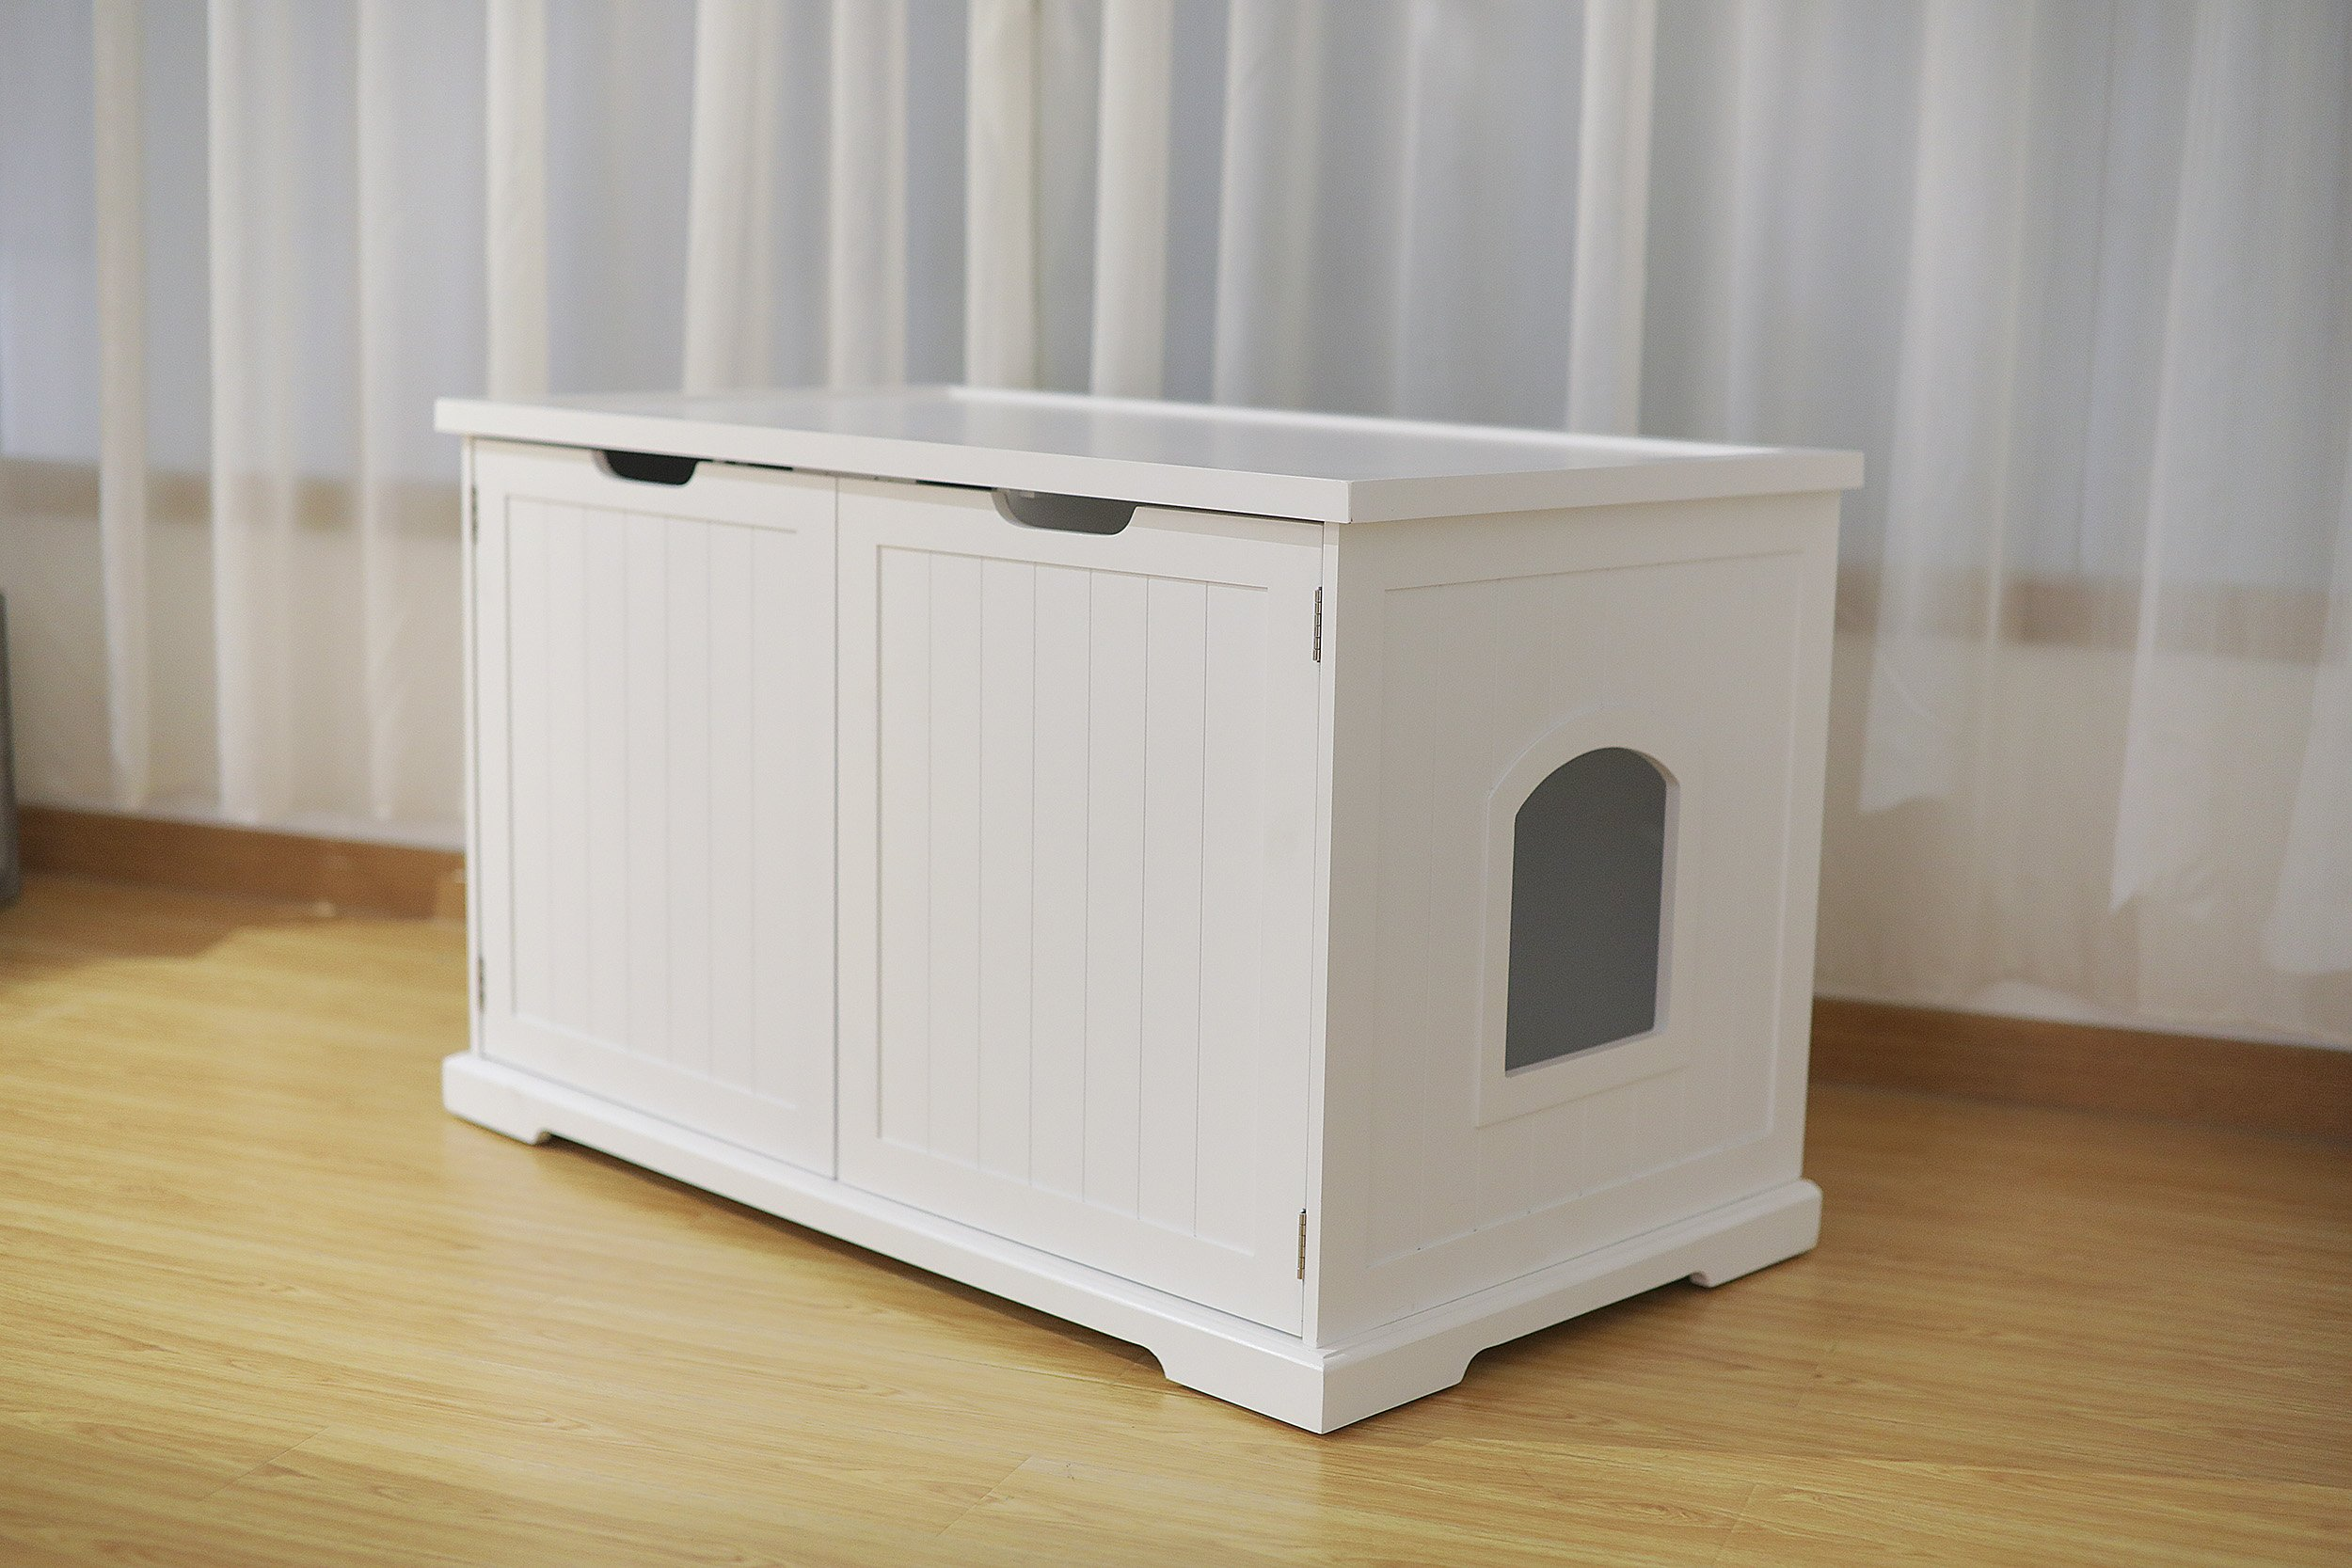 Merry Products Cat Washroom Bench, White by Merry (Image #5)